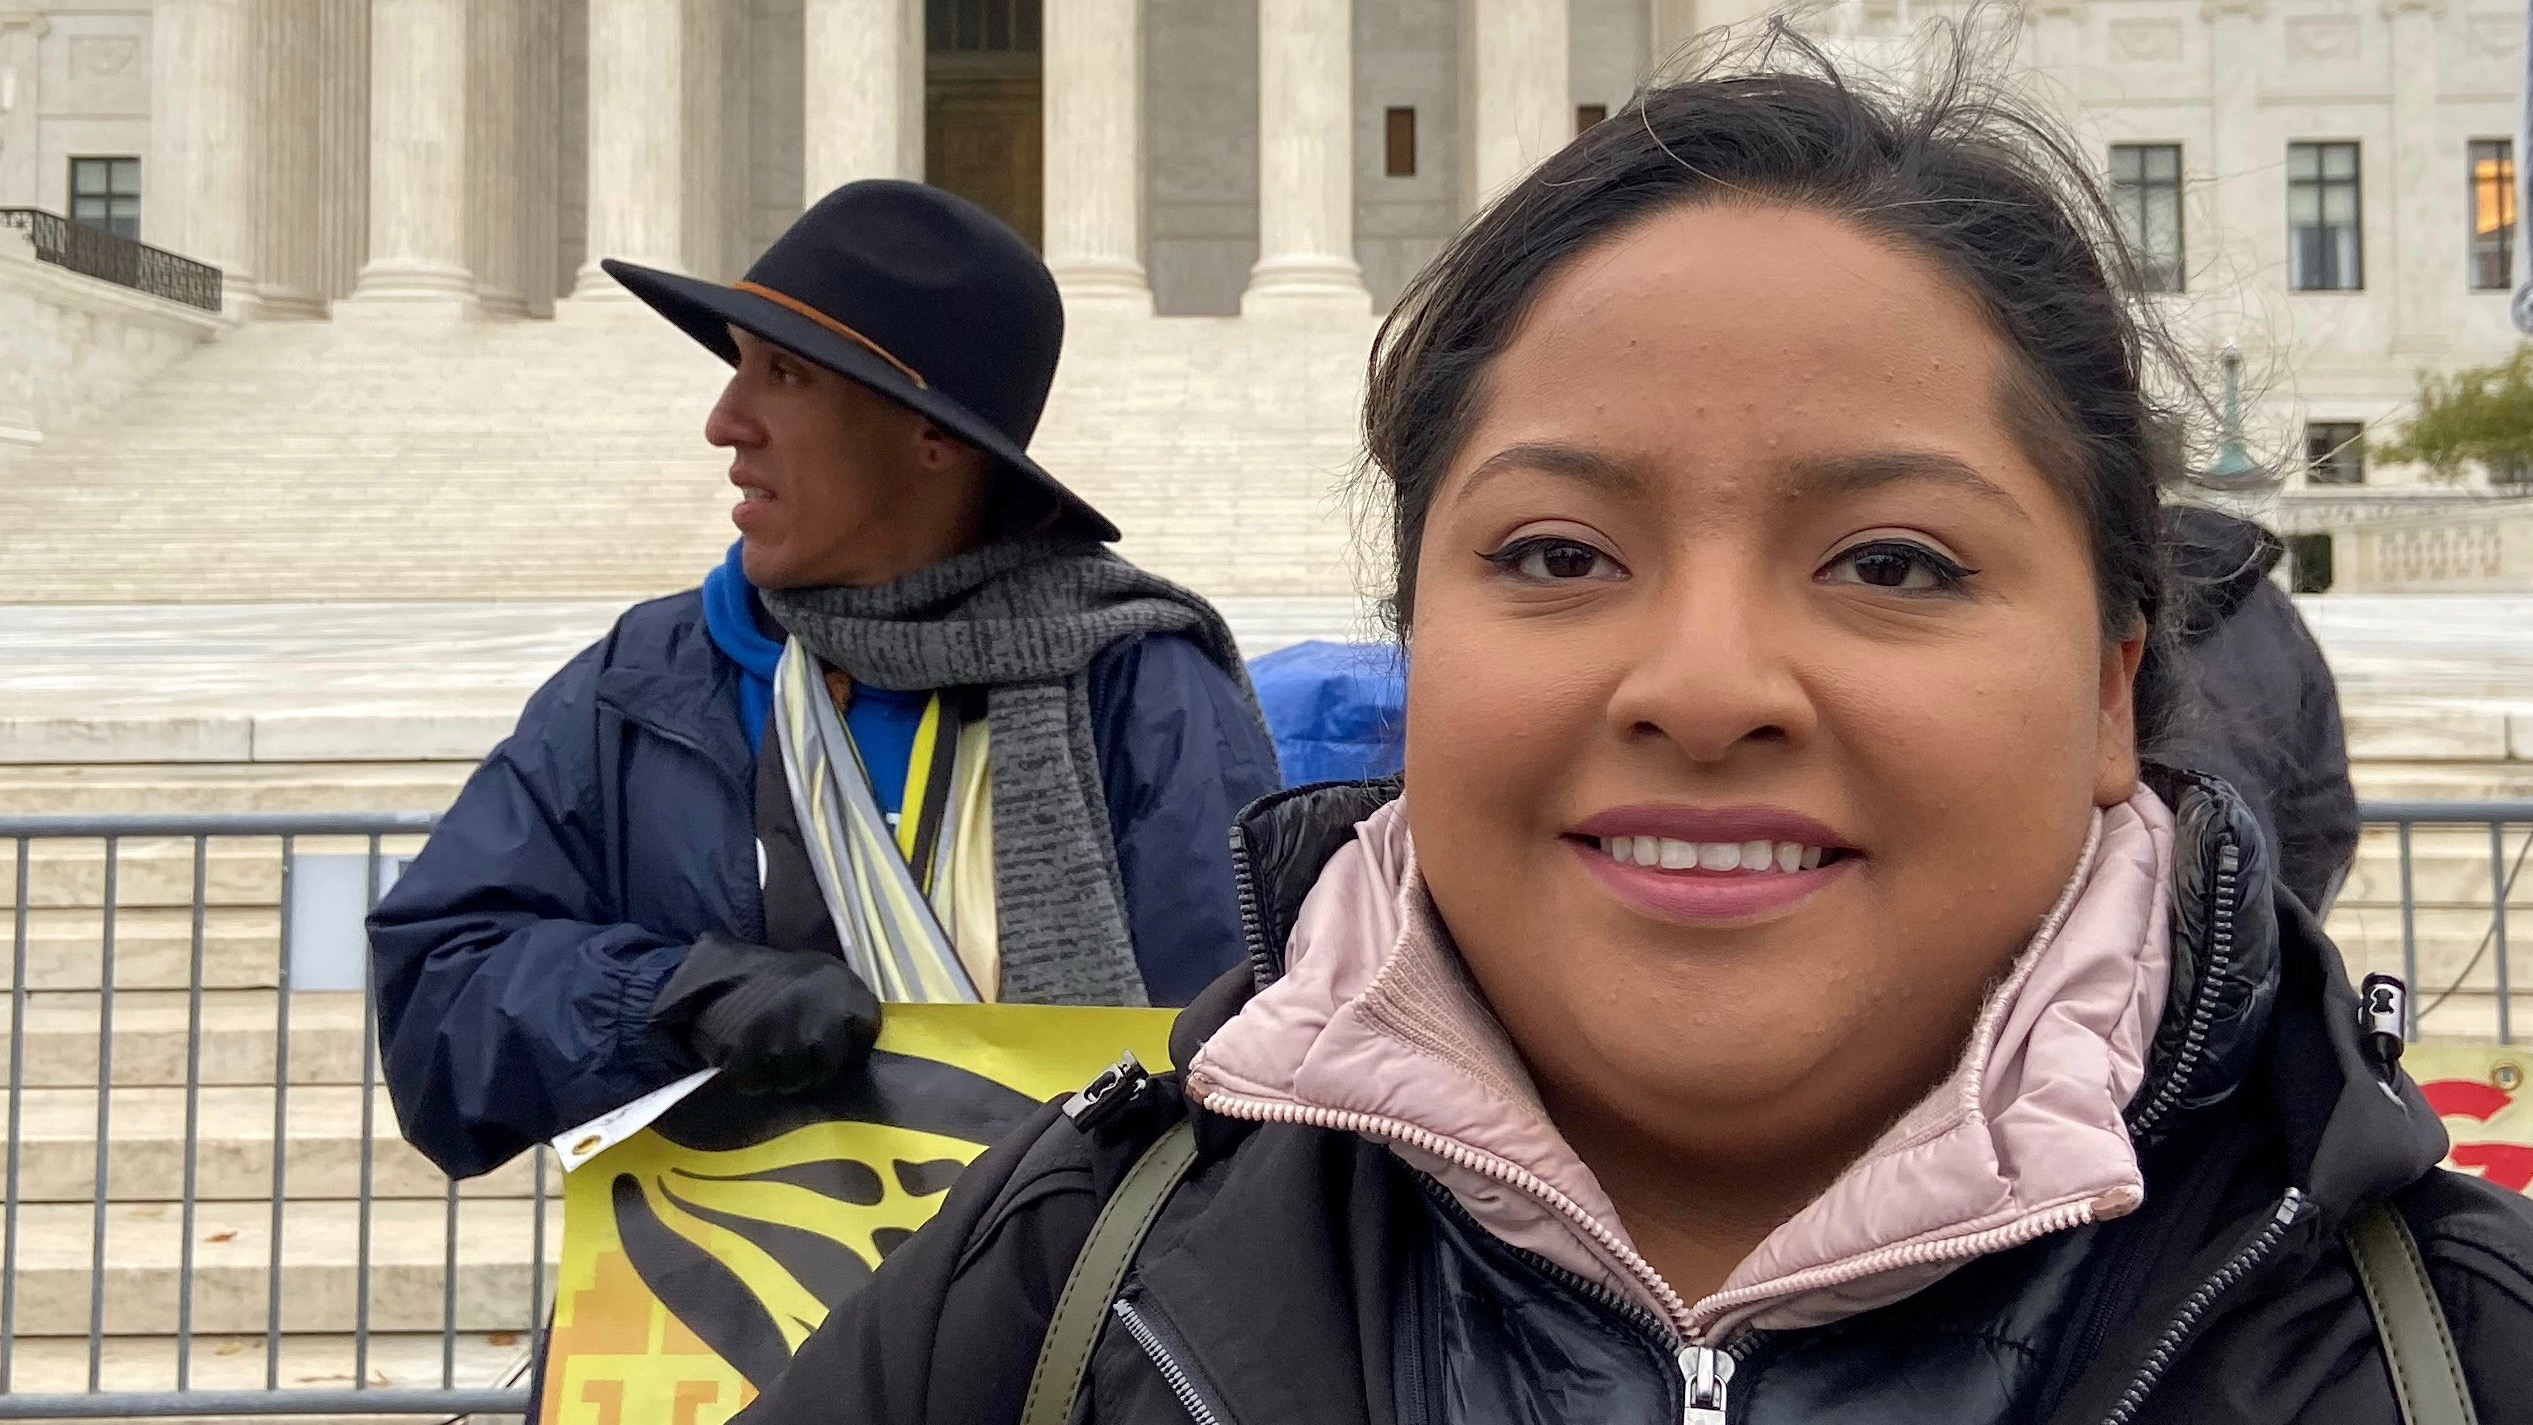 Anel Medina, a 28-year-old DACA enrollee and oncology nurse for Penn Medicine in Philadelphia, outside the US Supreme Court.